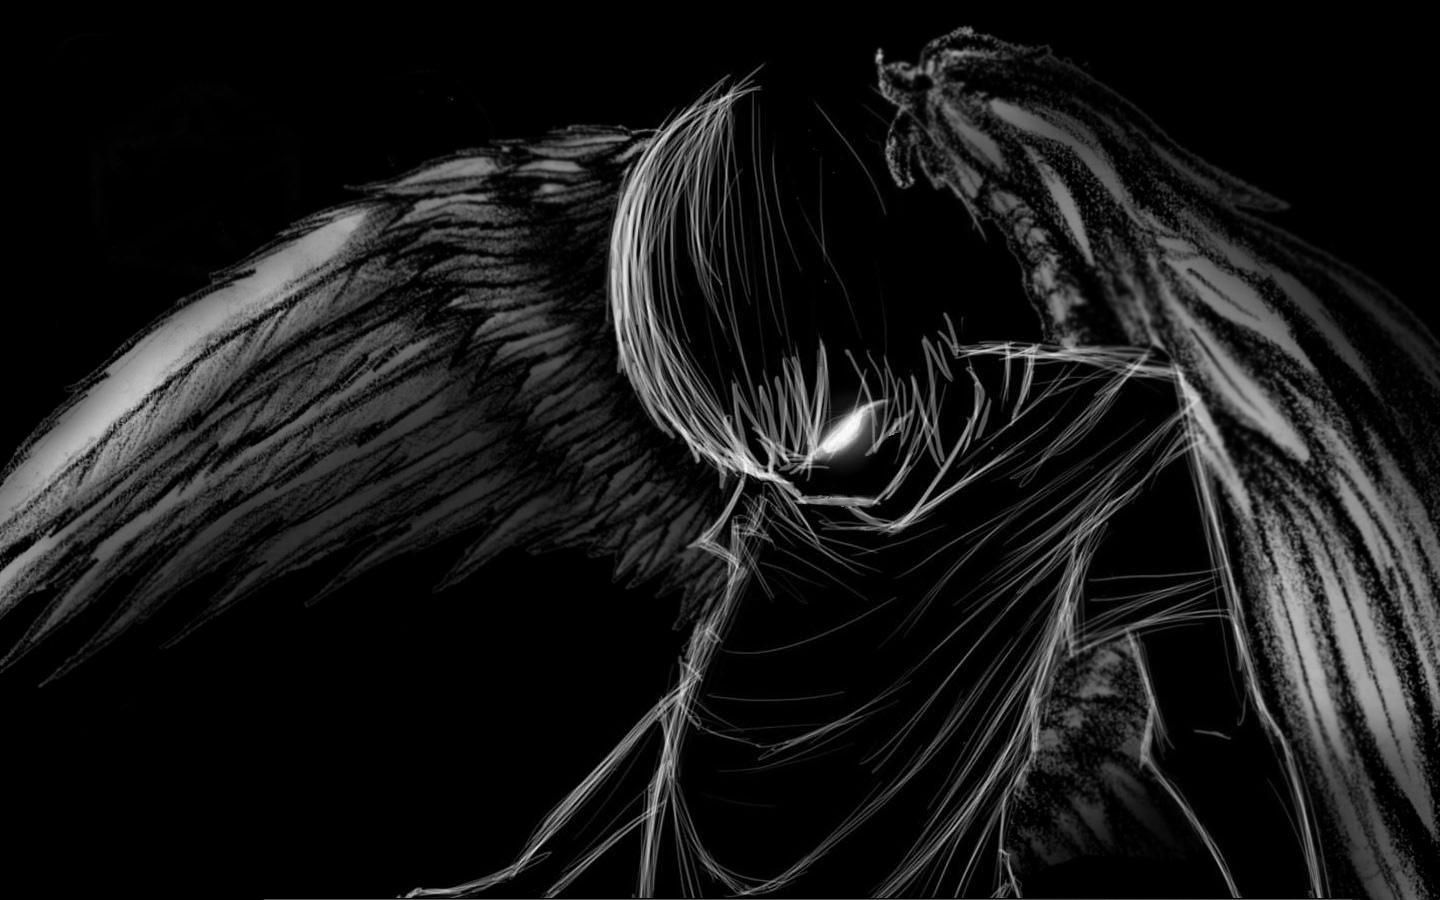 Eyeless Jack Creepypasta Desktop Background Firefox Wallpaper 1440x900